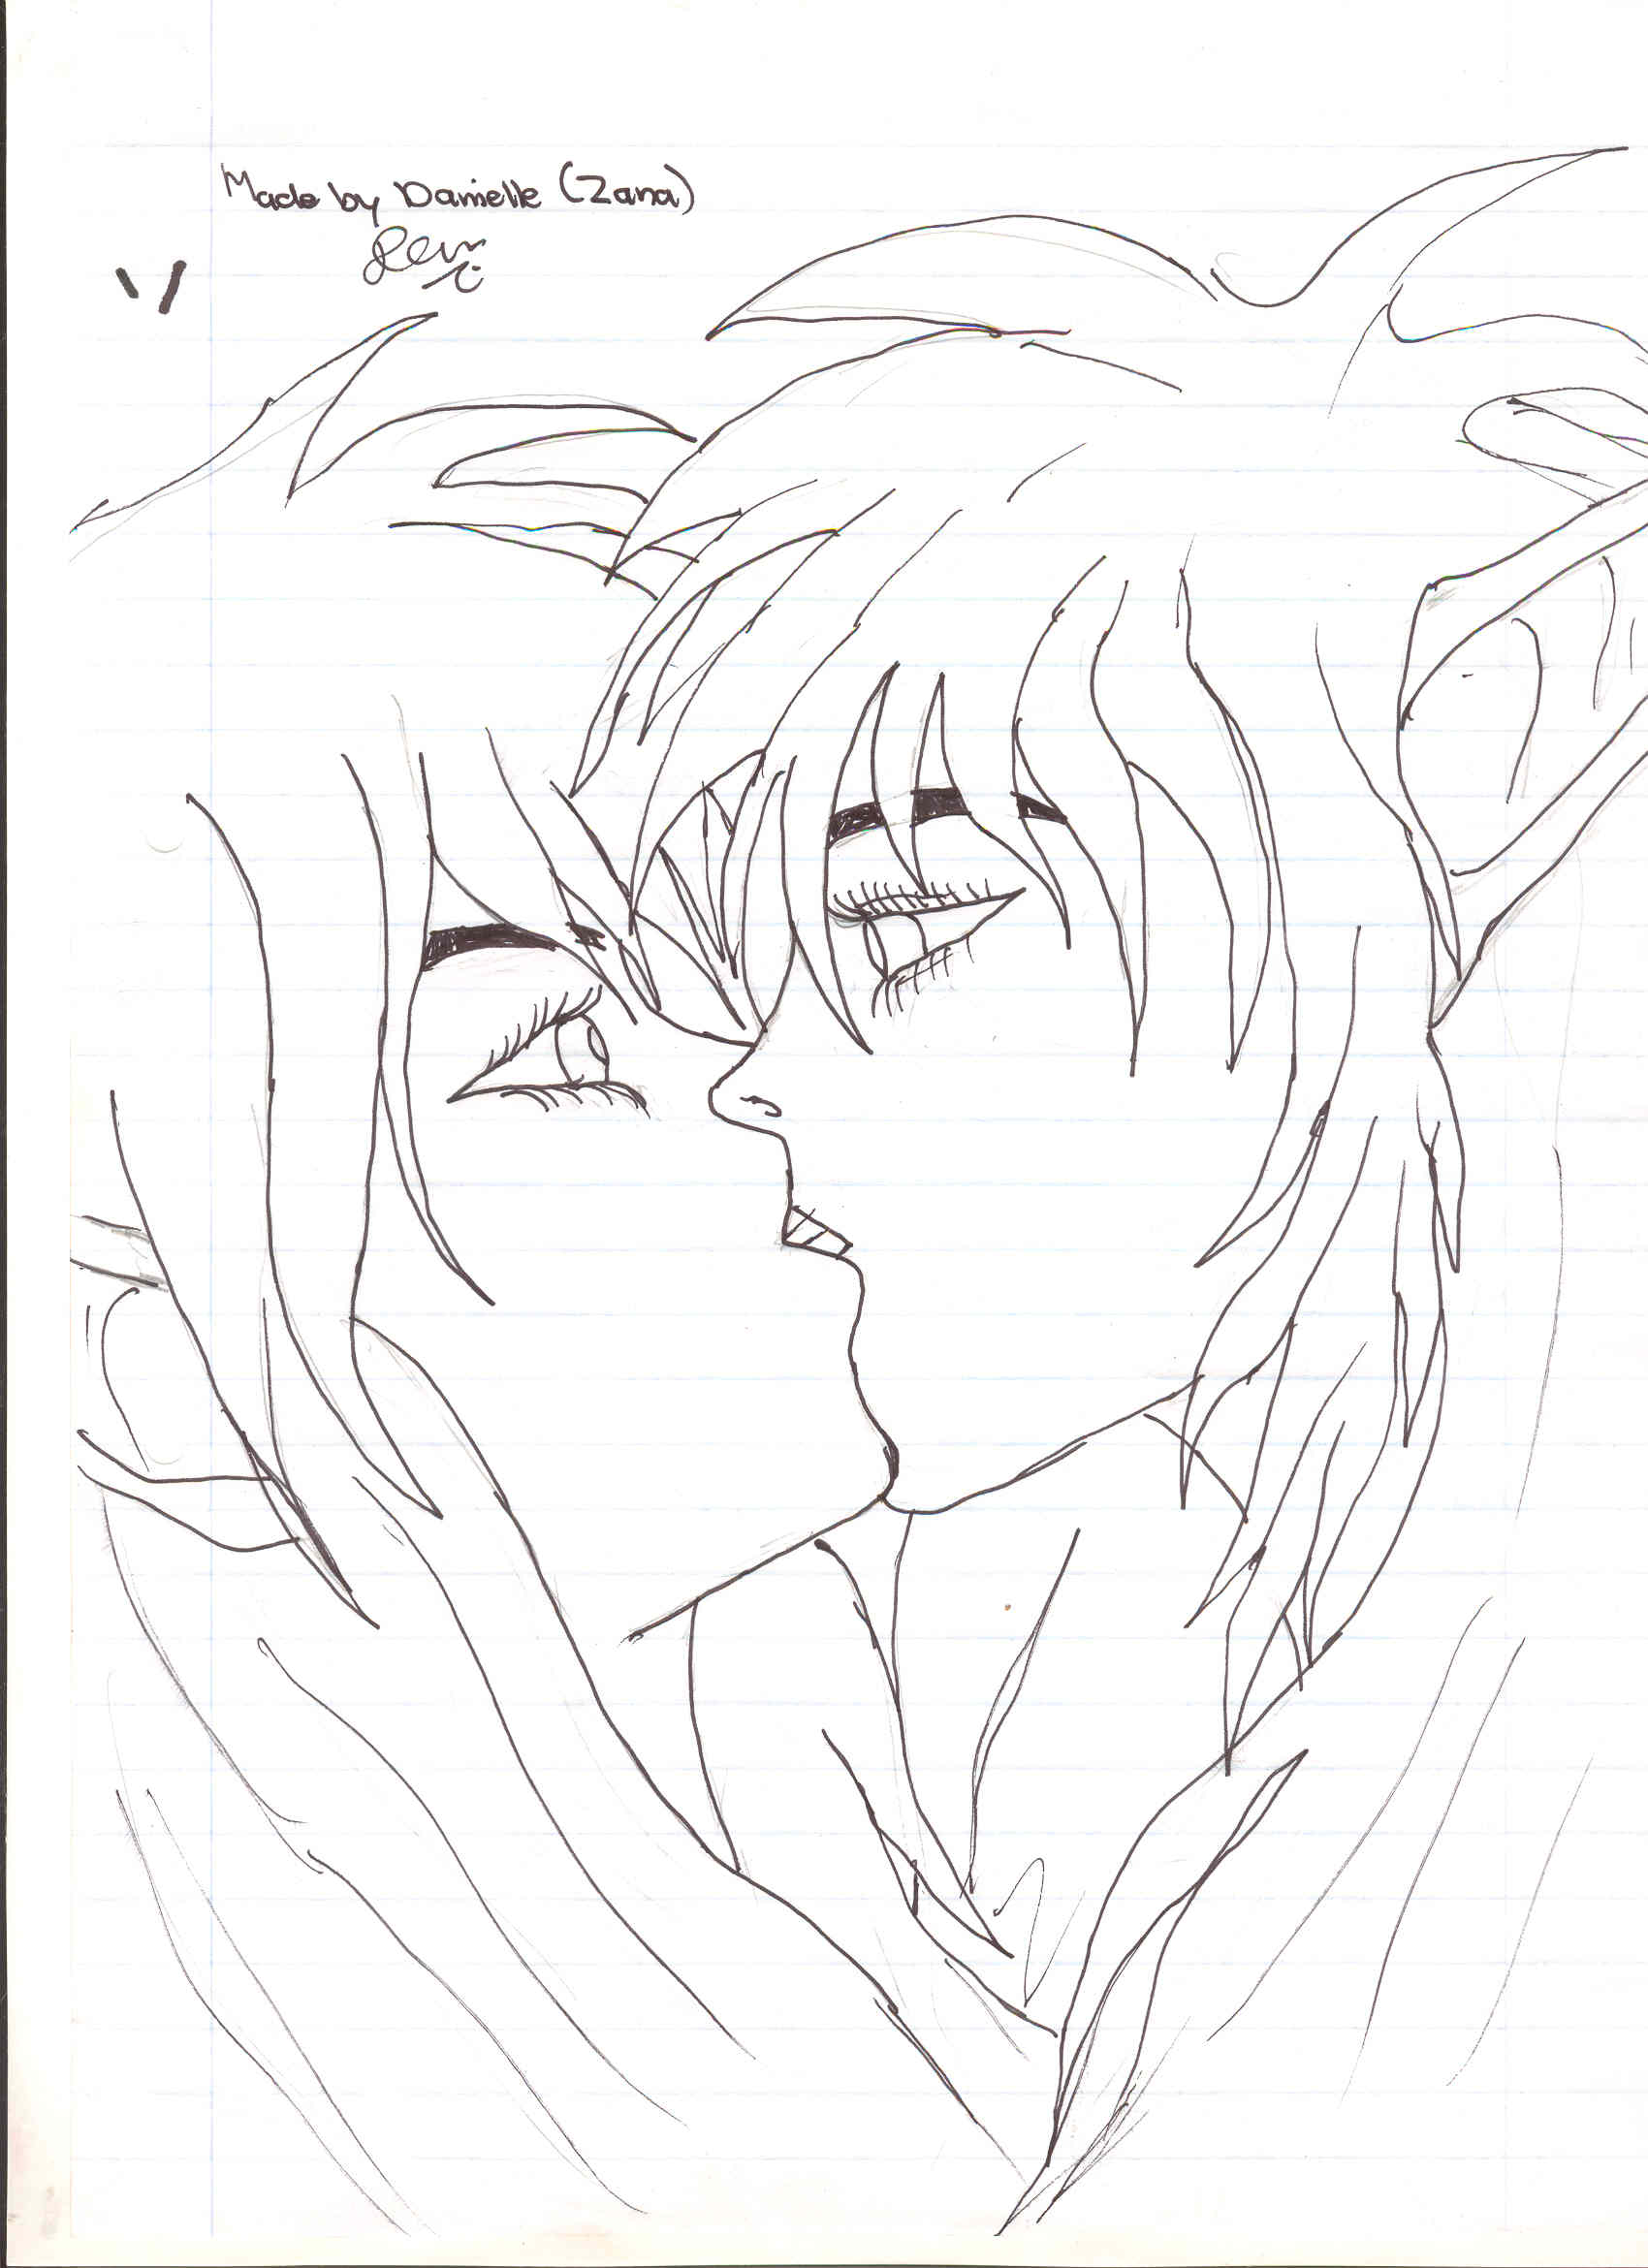 Drawn kisses elven By zananeichan Kissing by Draw